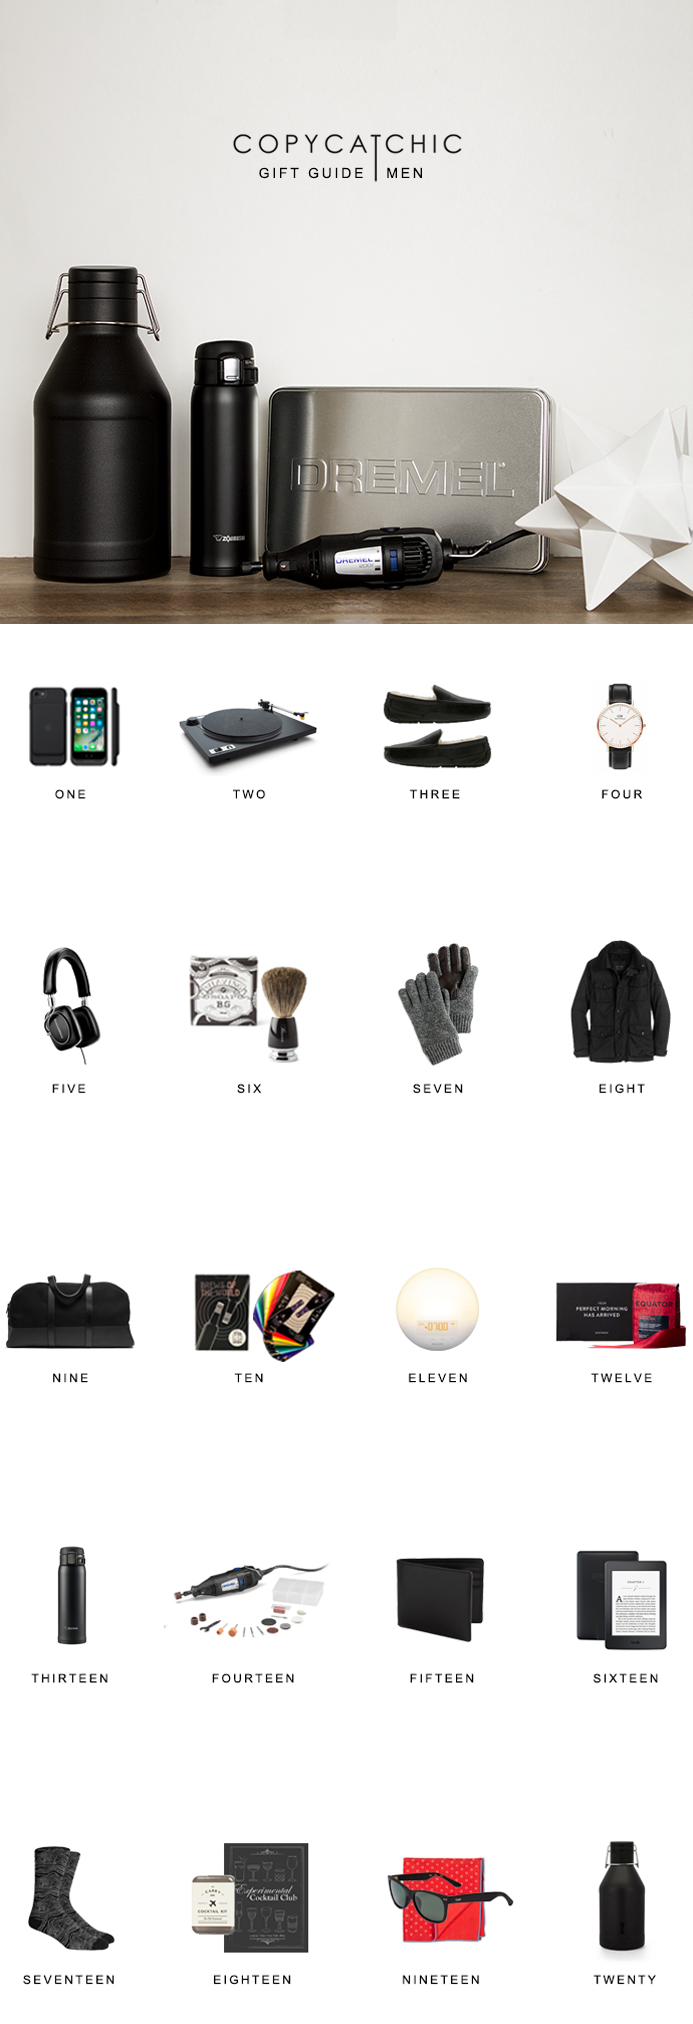 Modern minimalist gifts and accessories for men. Christmas gift guide | Copy Cat Chic hipster favorites for the 2016 holiday season! | Luxe living for less {permalink}